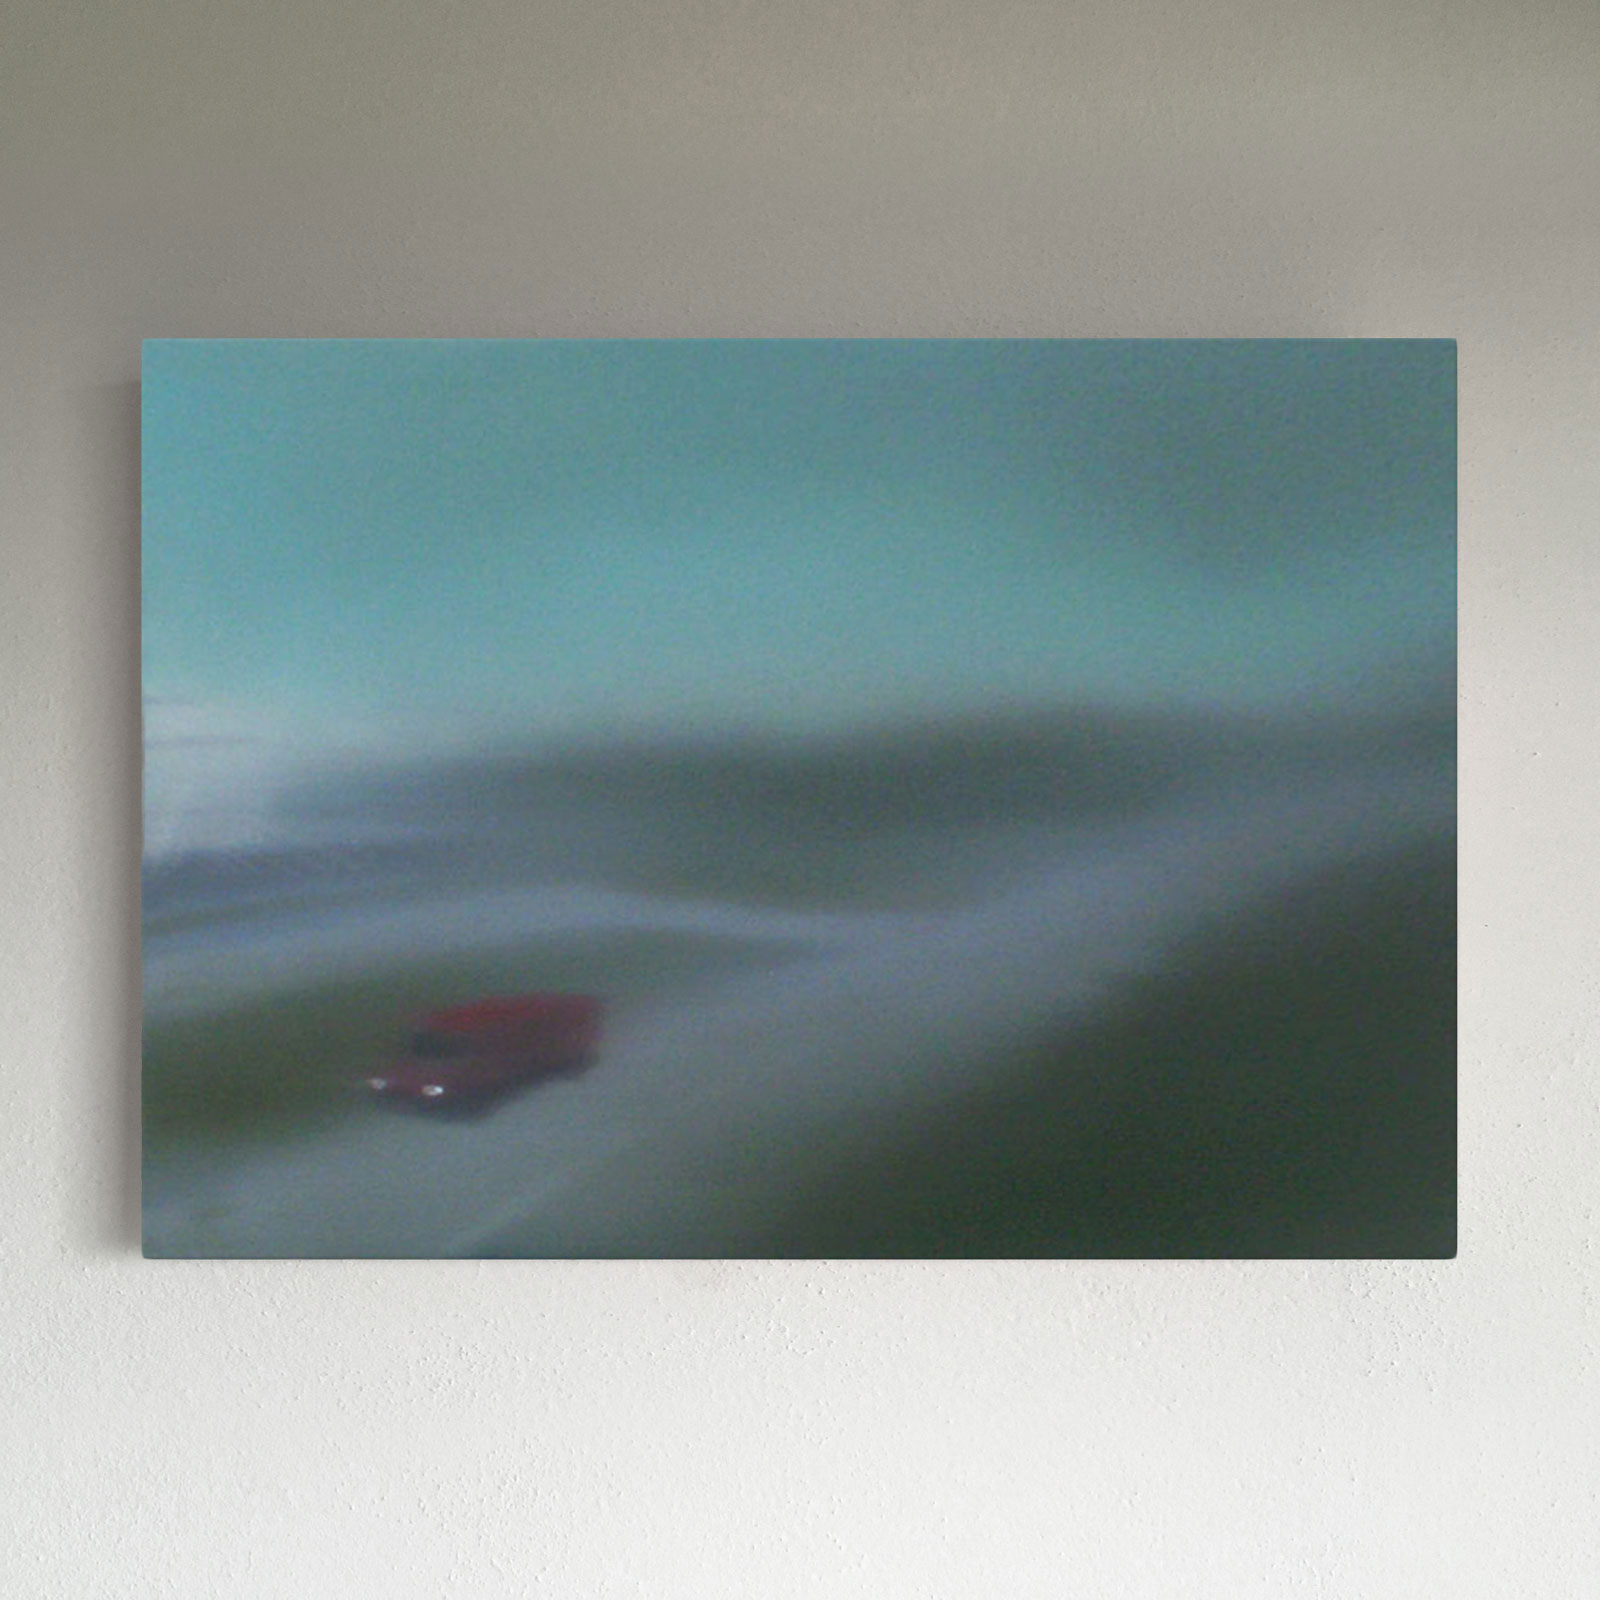 T#11-2008, oil on canvas, 70x100cm, private collection